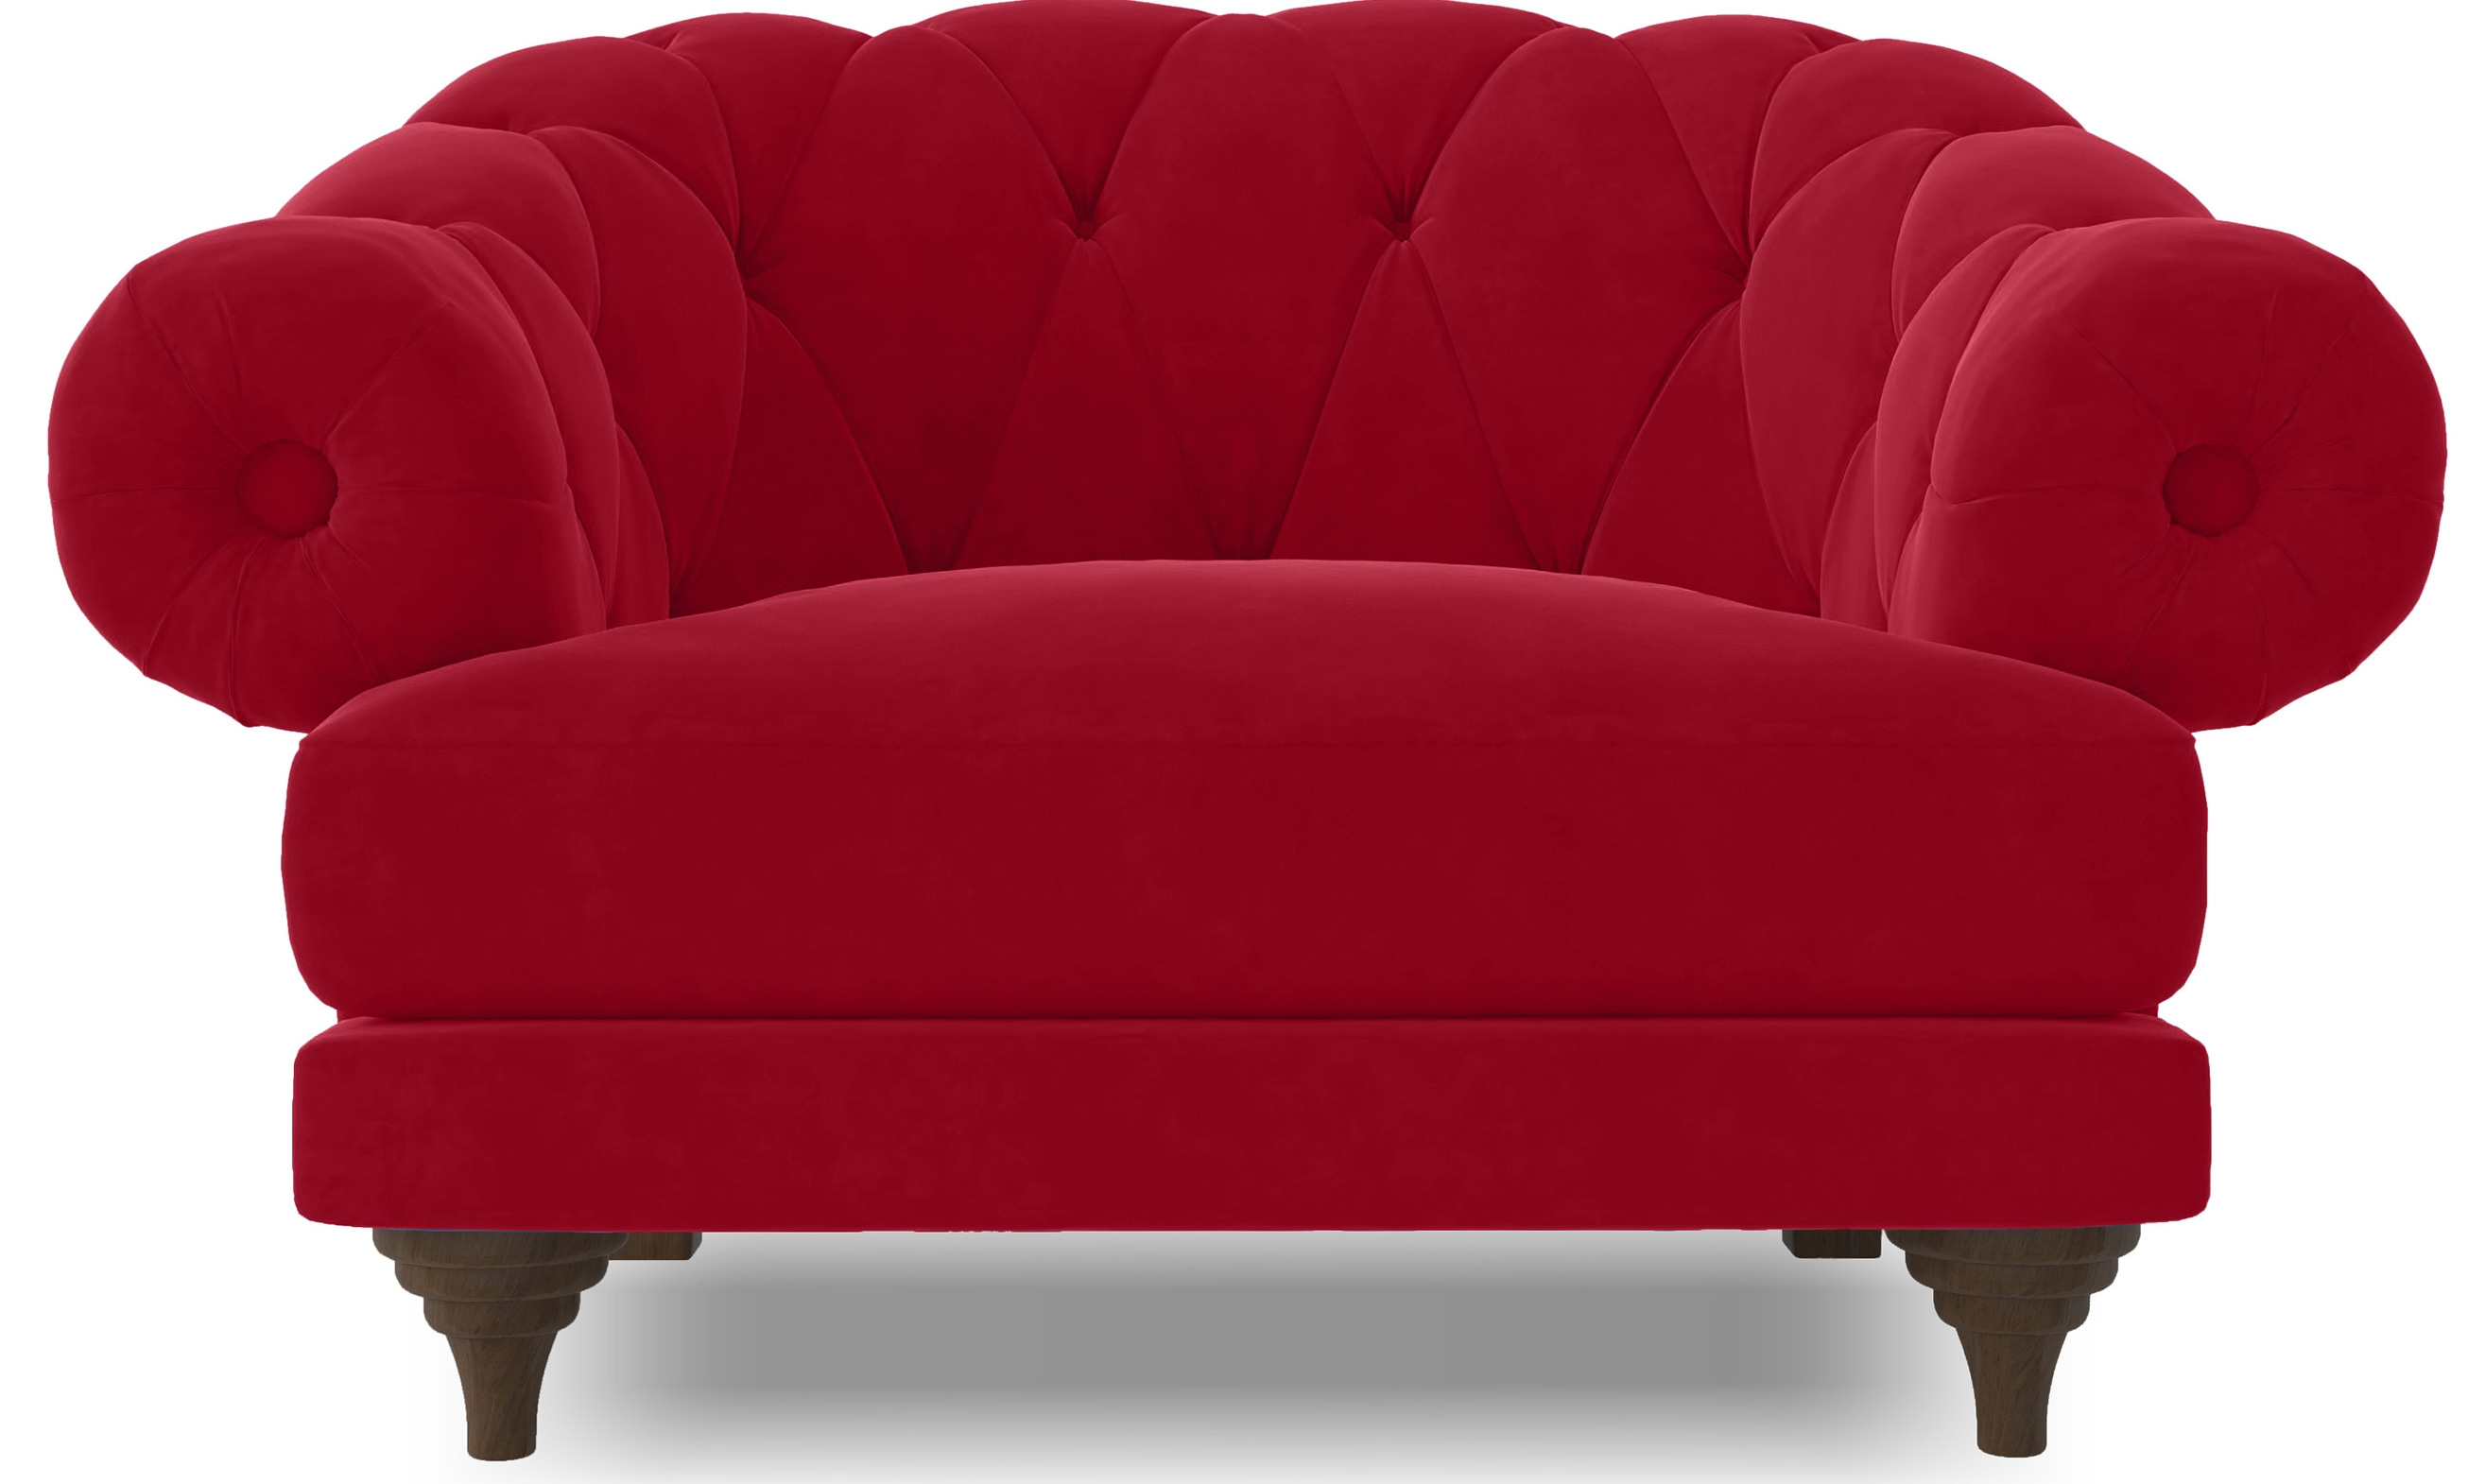 Fauteuils Chesterfield Rouge Fauteuil Ultra Confortable Velours Rouge Chesterfield